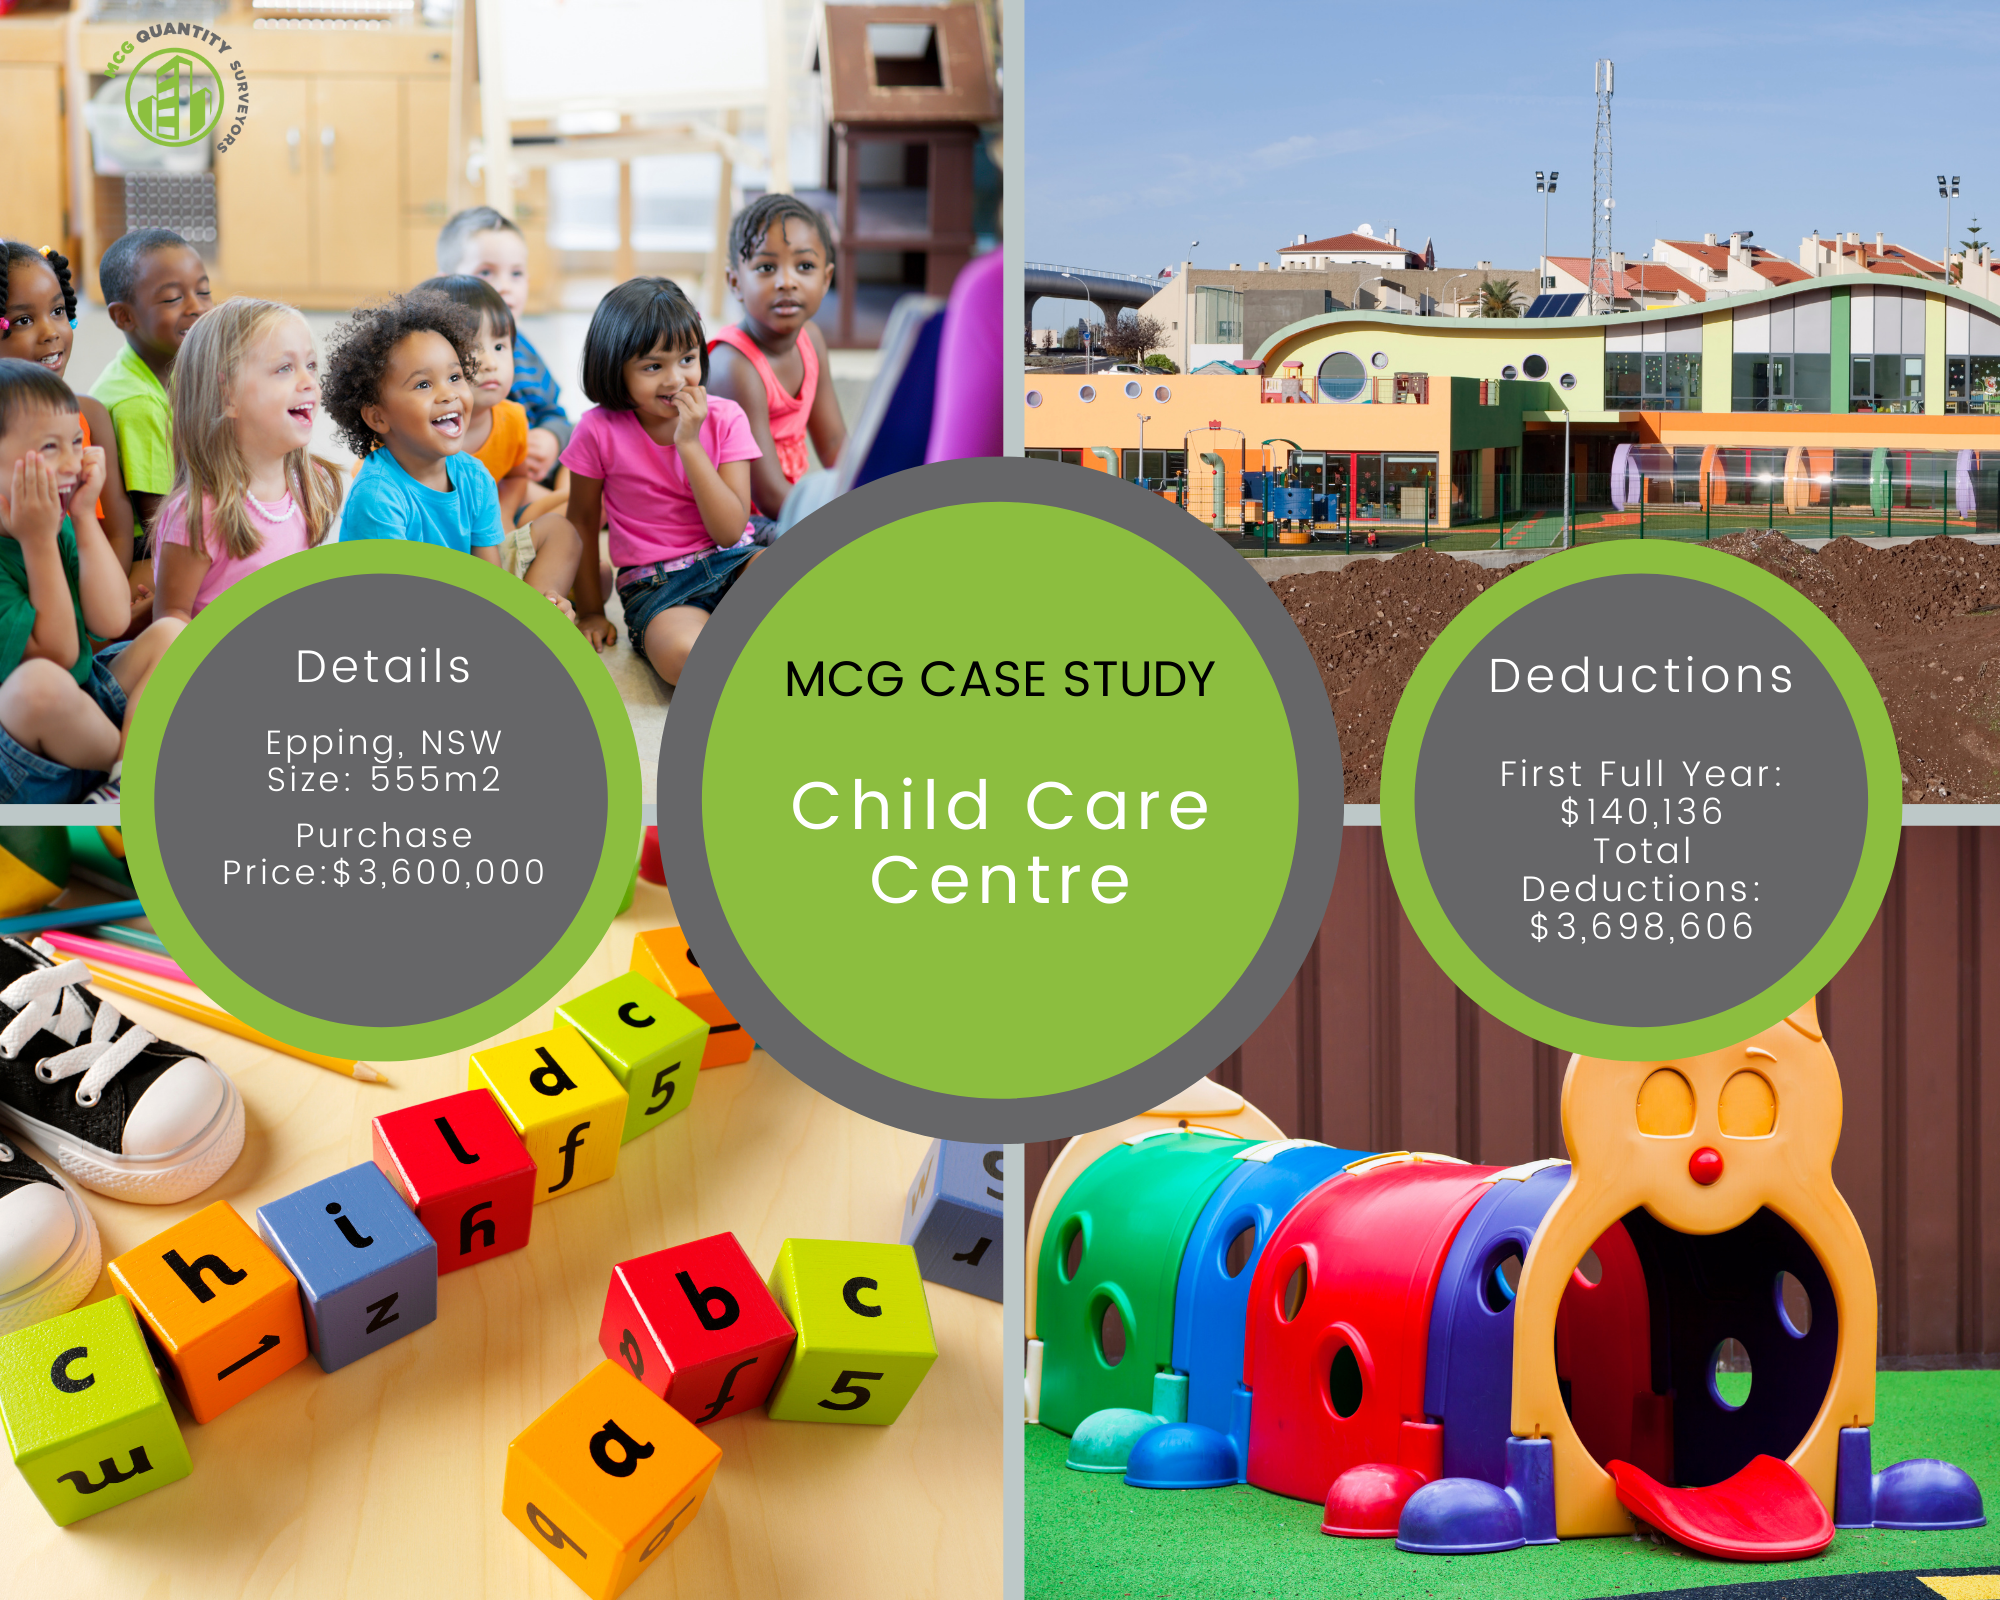 Case Study - Child Care Centre, Epping NSW